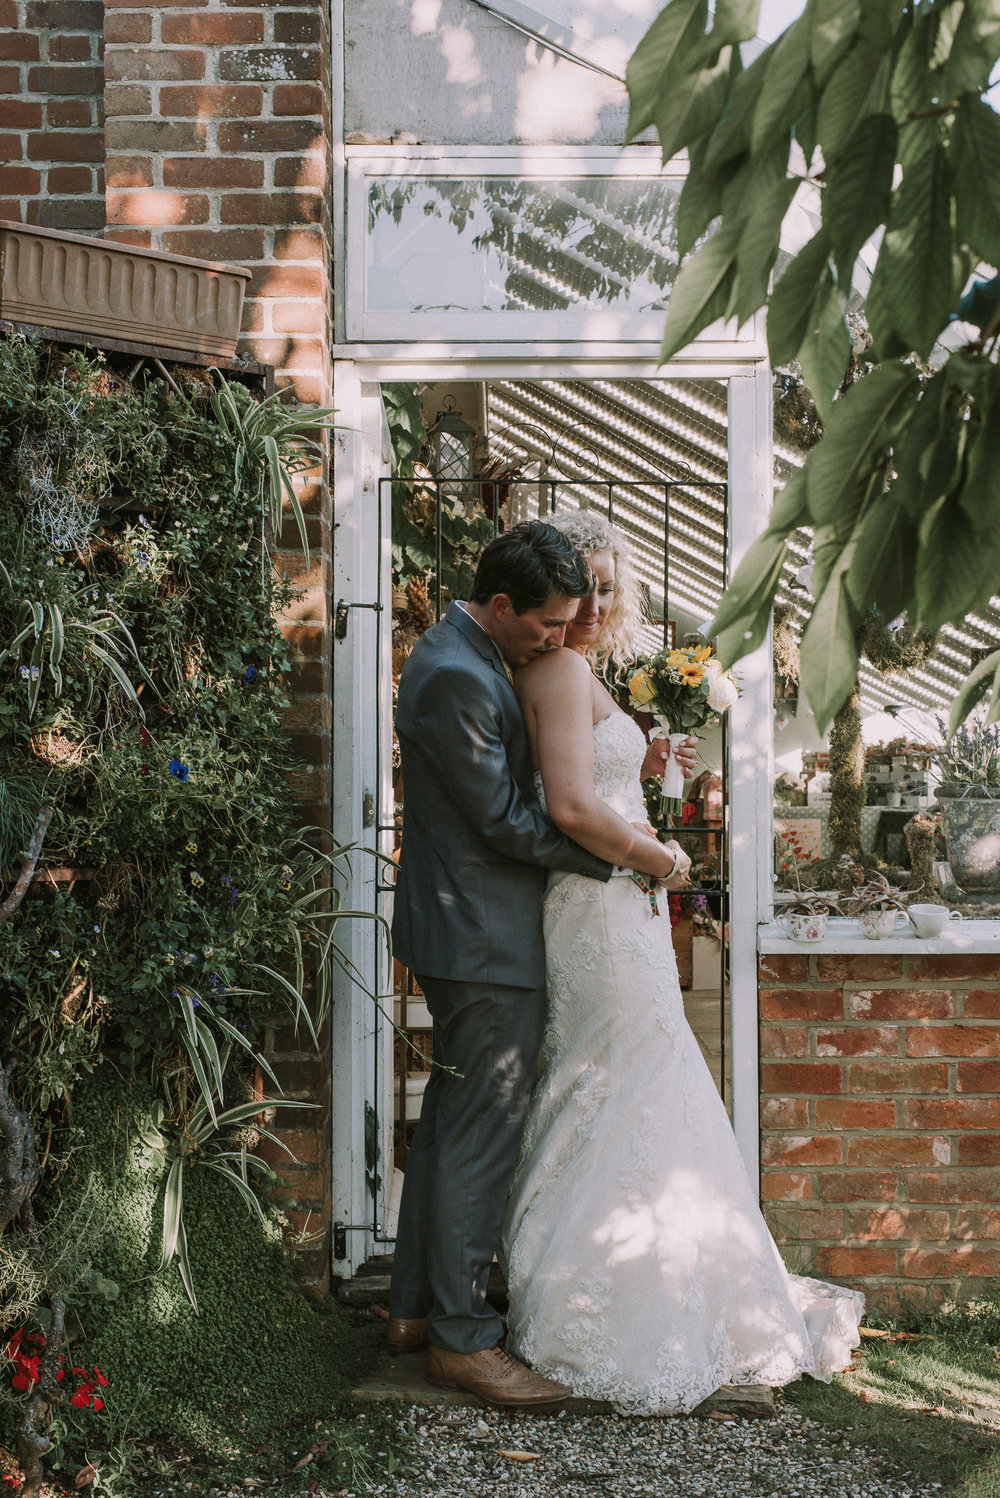 Festival Wedding Photography Secret Garden Maidstone Kent Jay Tunbridge Photorgaphic Co-47.jpg